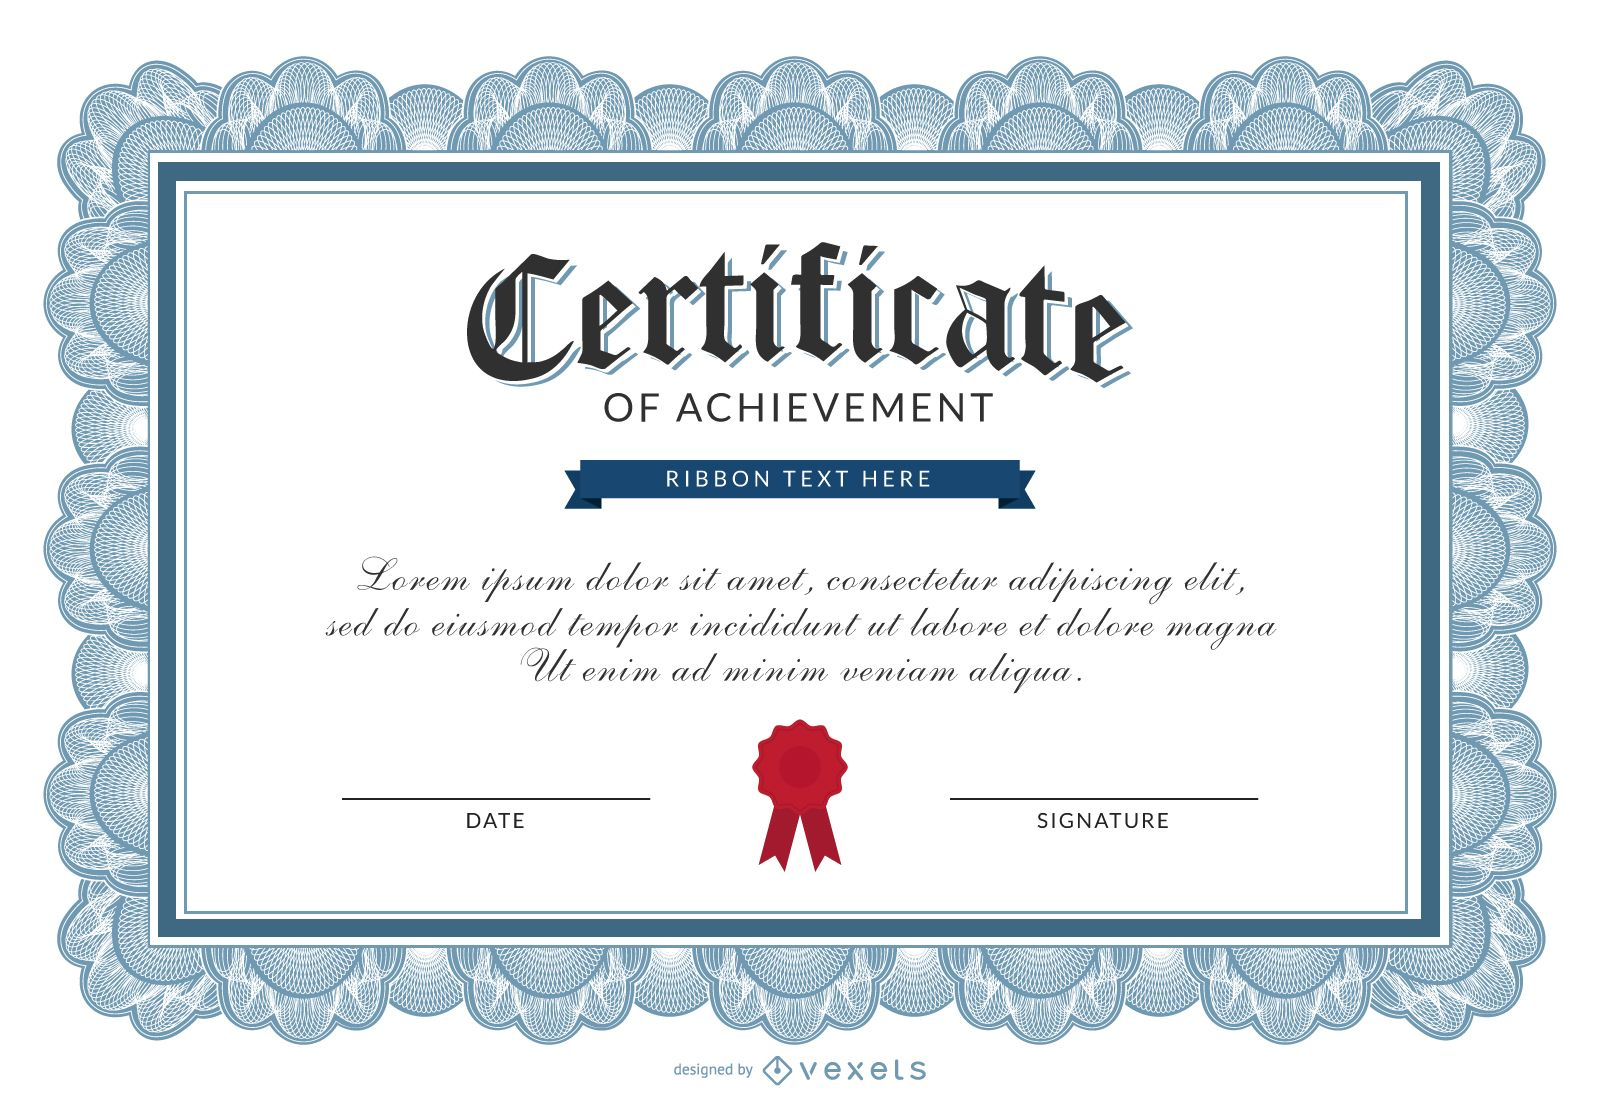 Certificate Of Achievement Template. Download Large Image 1600x1100px.  License Image; User  Certificate Achievement Template